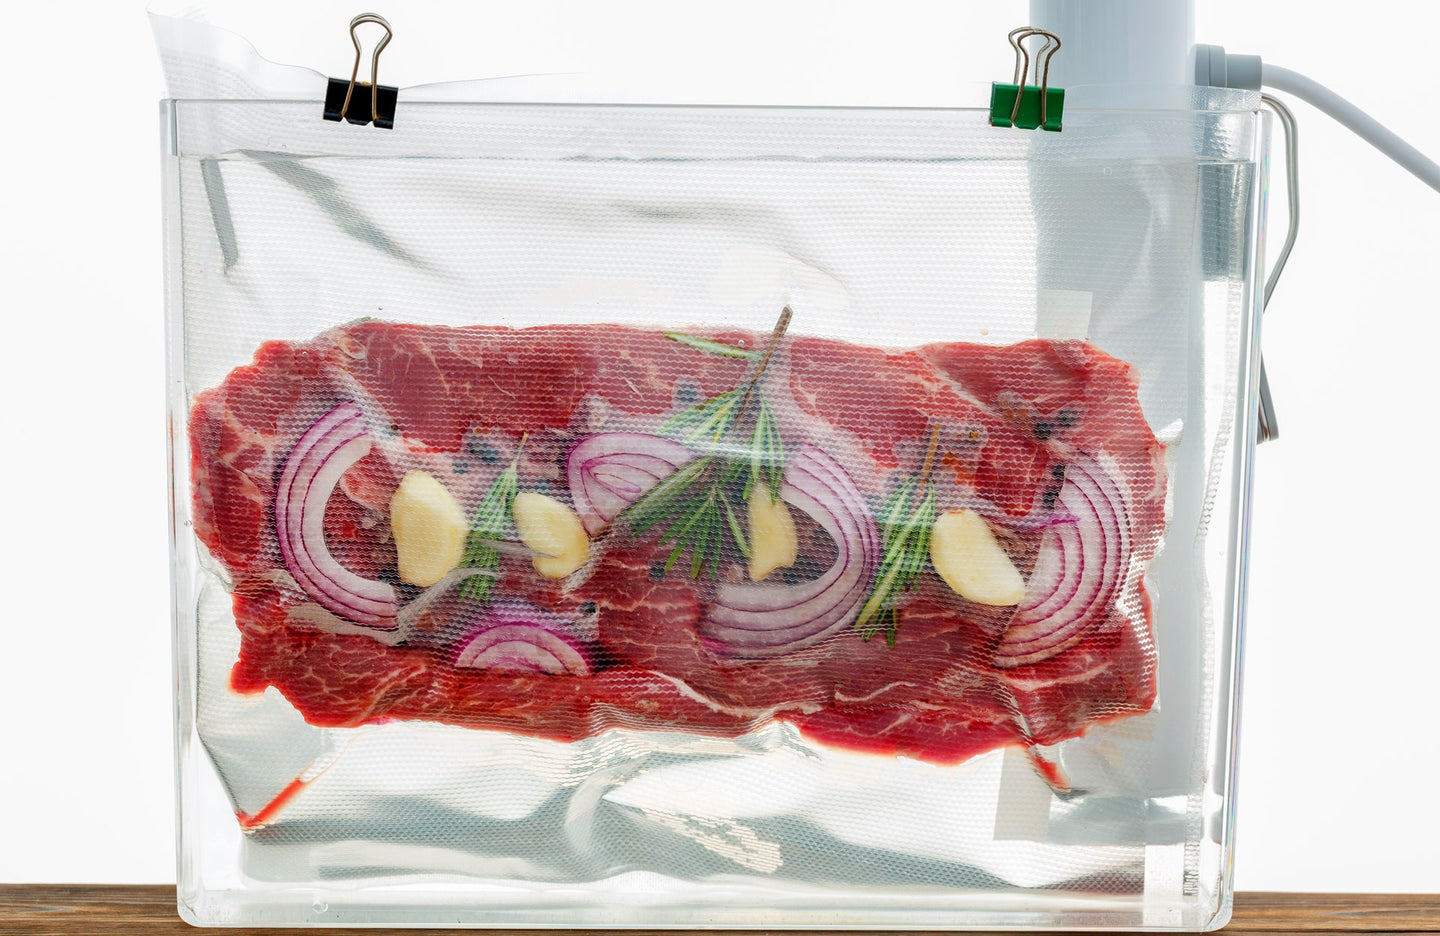 Sous vide bag containing raw beef, onions, and herbs